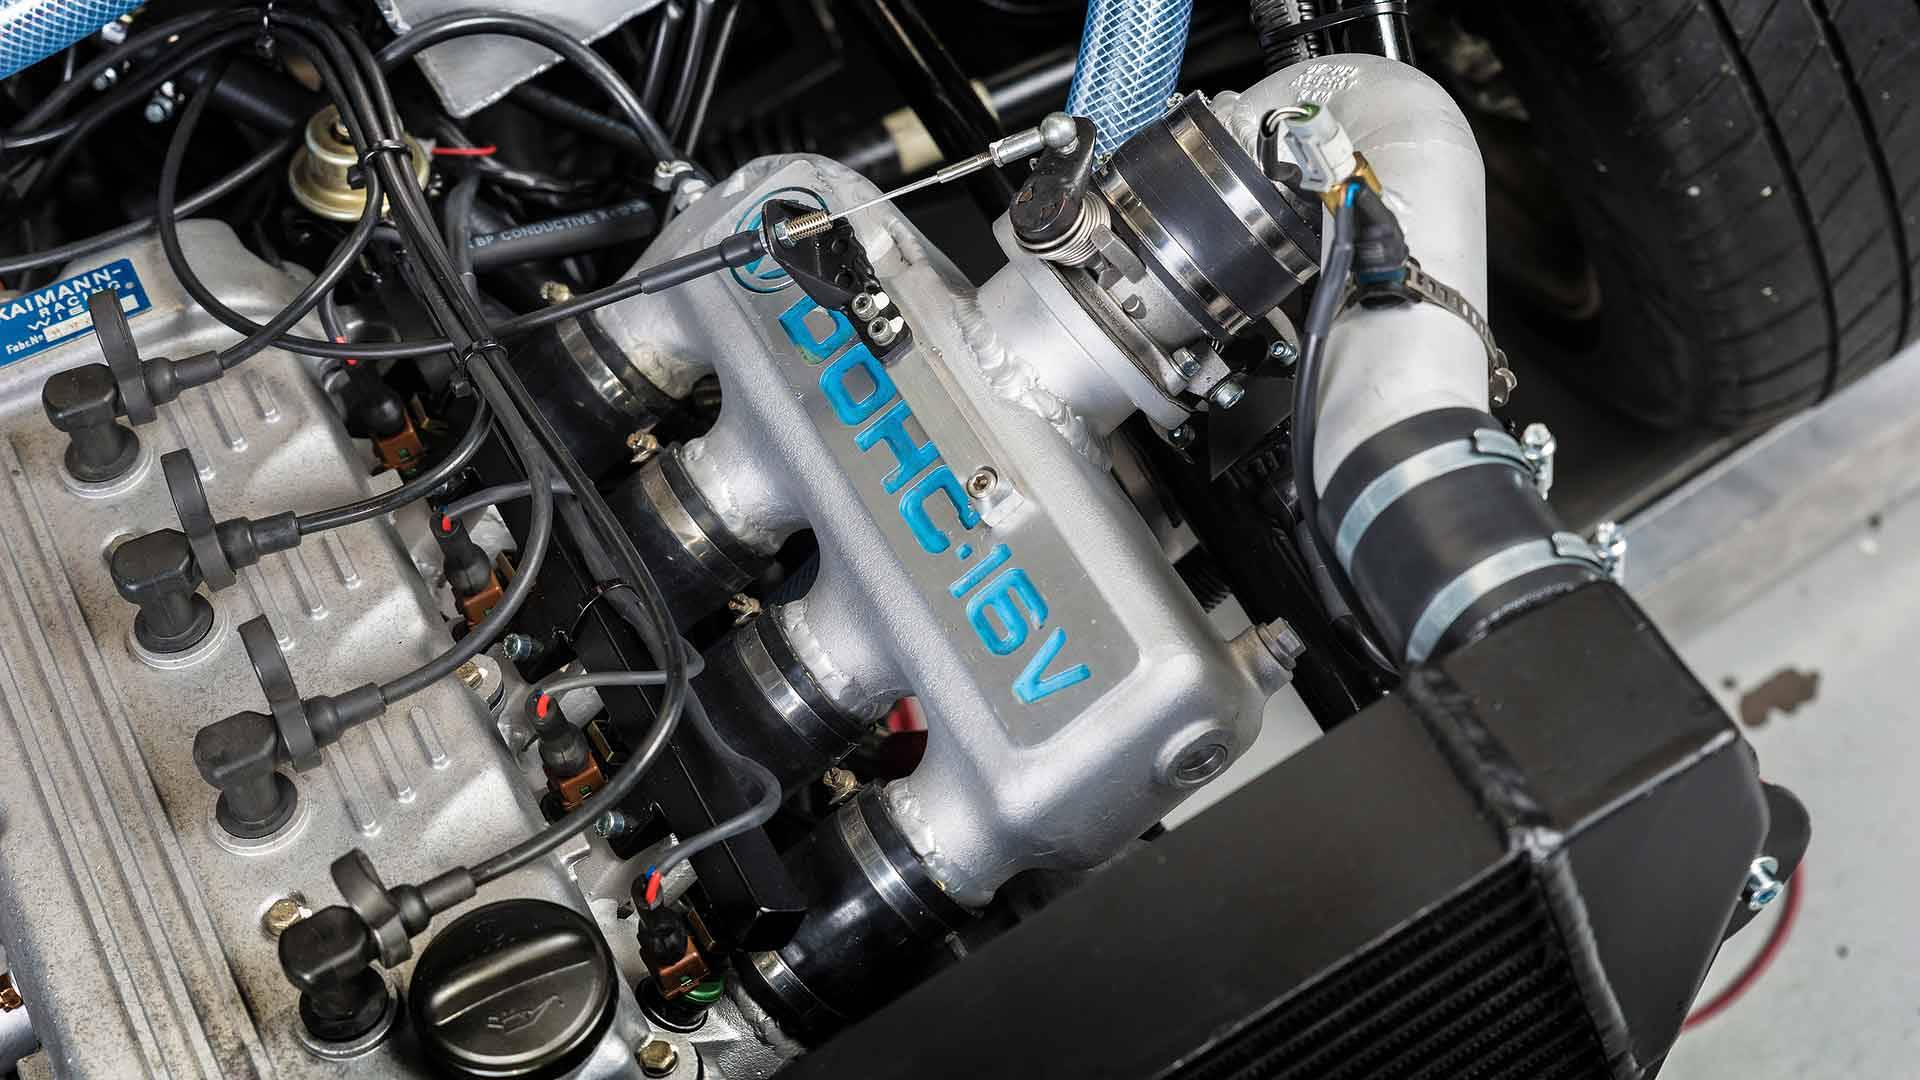 Twin Engined Vw Gti Pikes Peak Racer Restored To Be Rally Ready Engine Cooling System